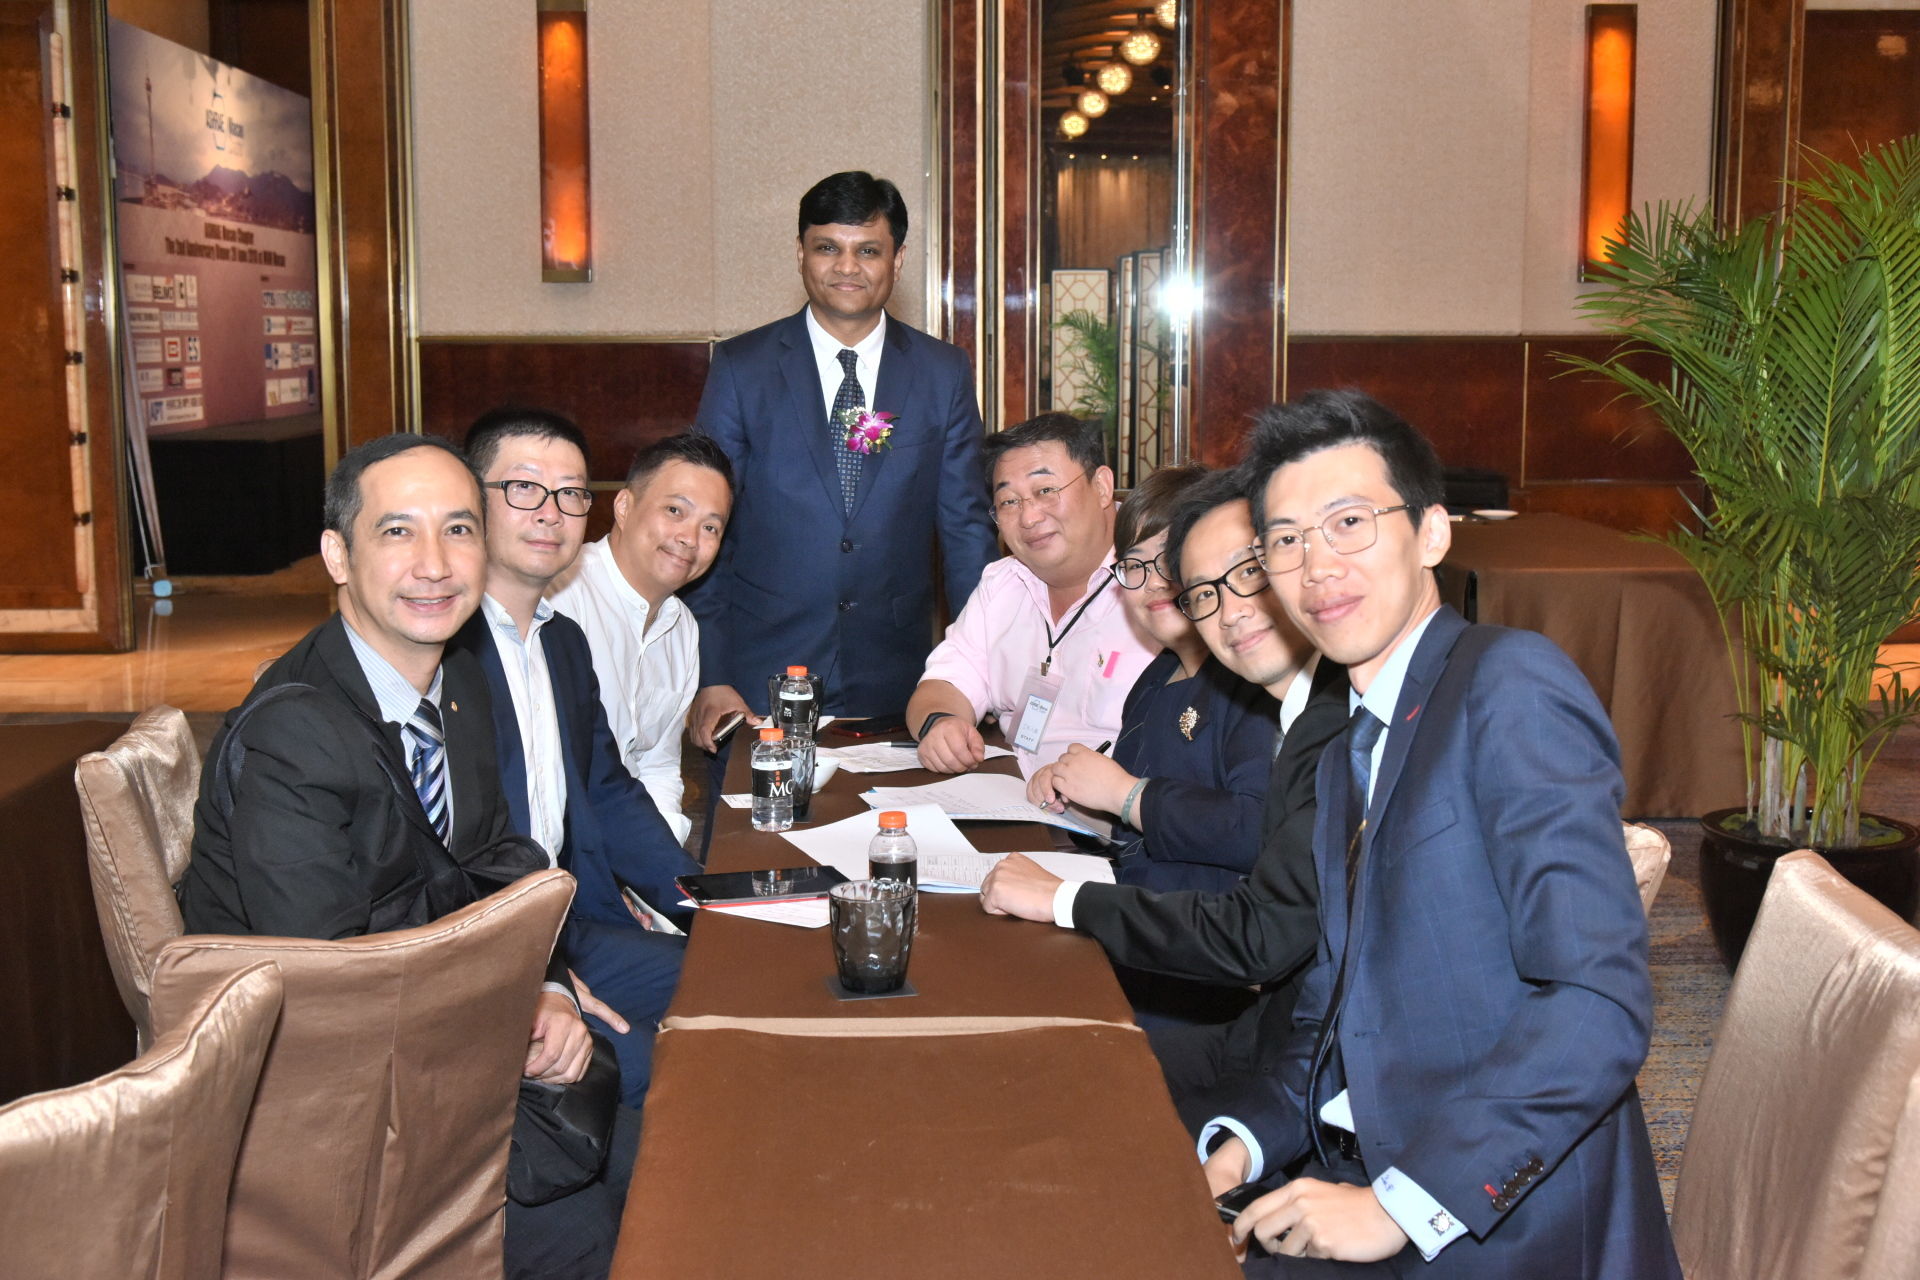 ASHRAE-Macao 2nd Annual General Meeting